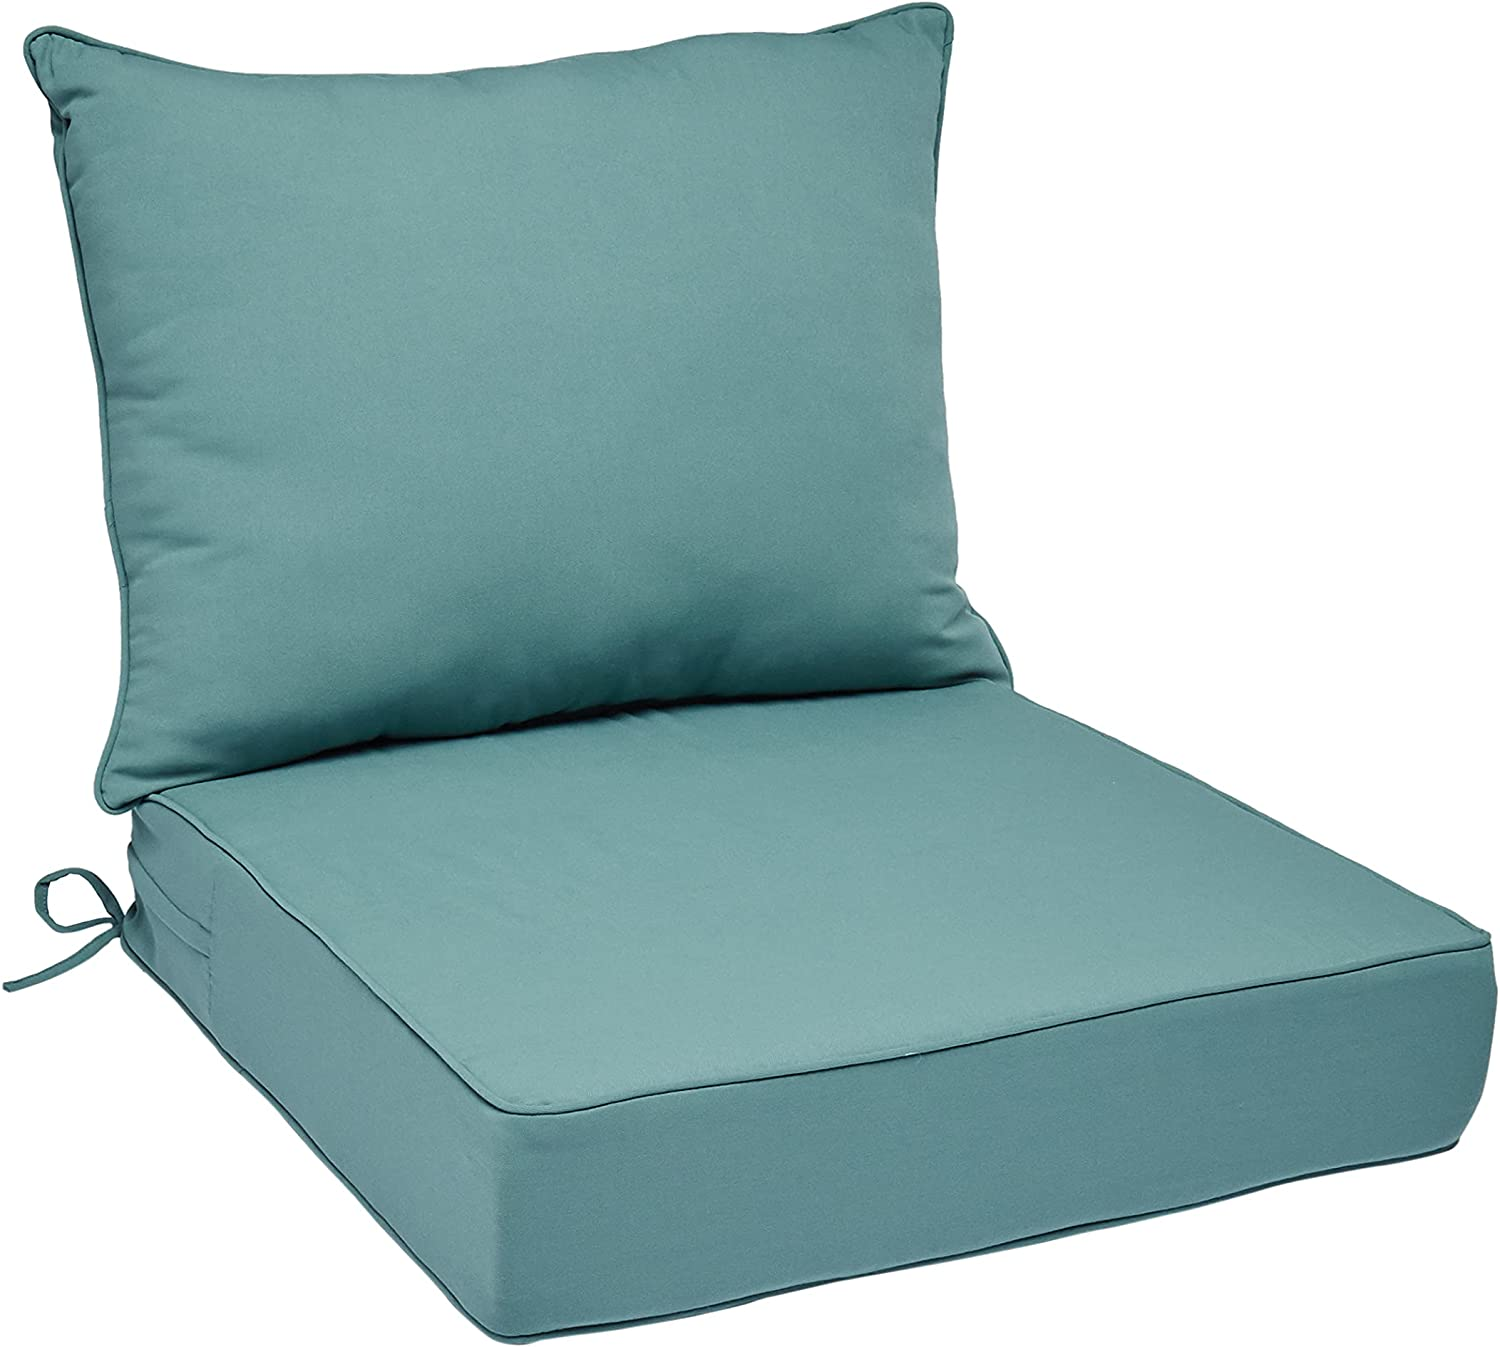 Amazon Basics Deep Seat Outdoor Patio Seat and Back Cushion Set 25 x 25 x 5 inches and 28 x 22 x 5 Inches, Cyan Blue